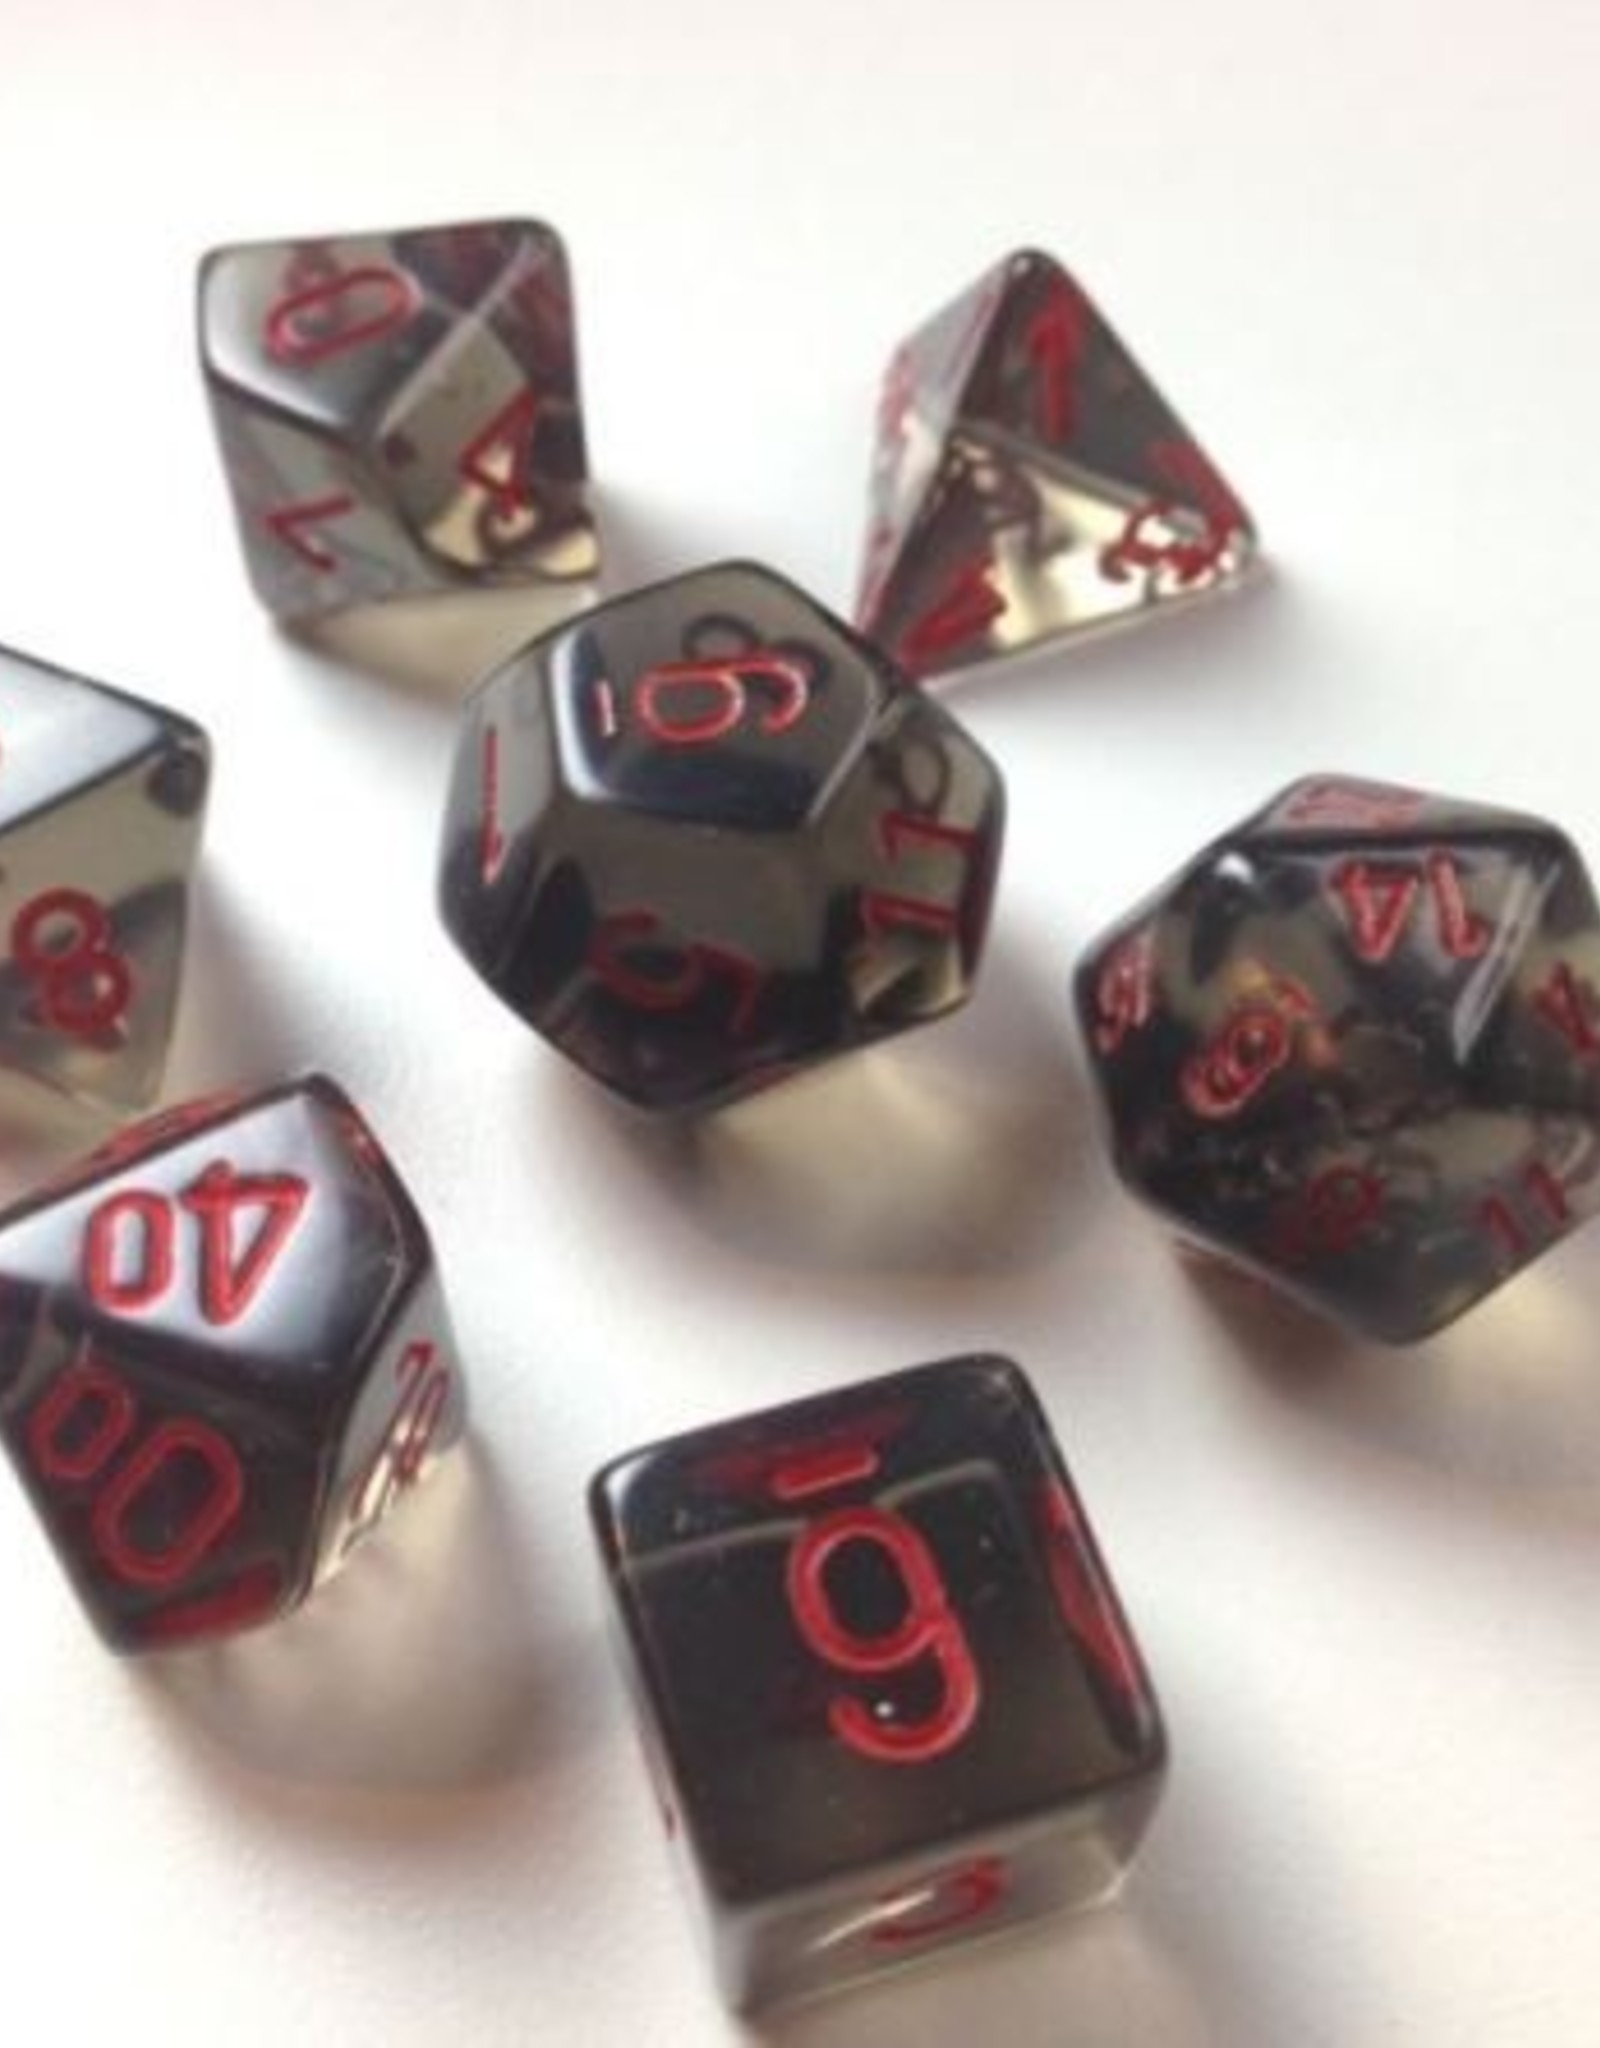 Chessex Chessex 7-Die set Translucent - Smoke/Red